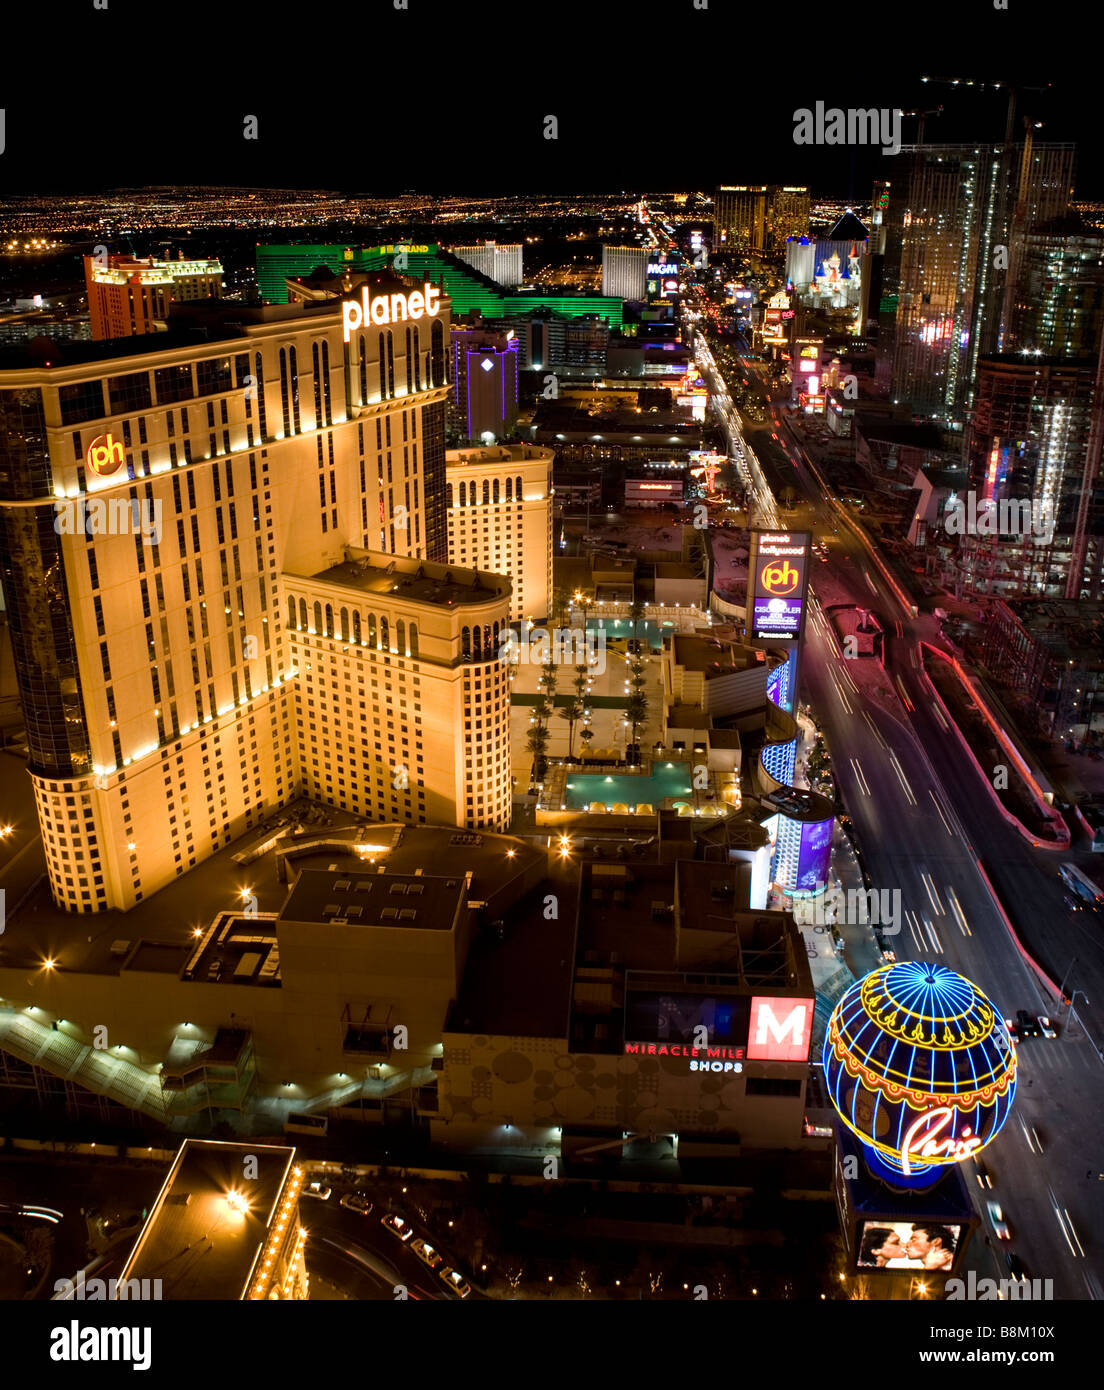 Las Vegas Night View: View Of The Las Vegas Strip At Night From The Top Of The